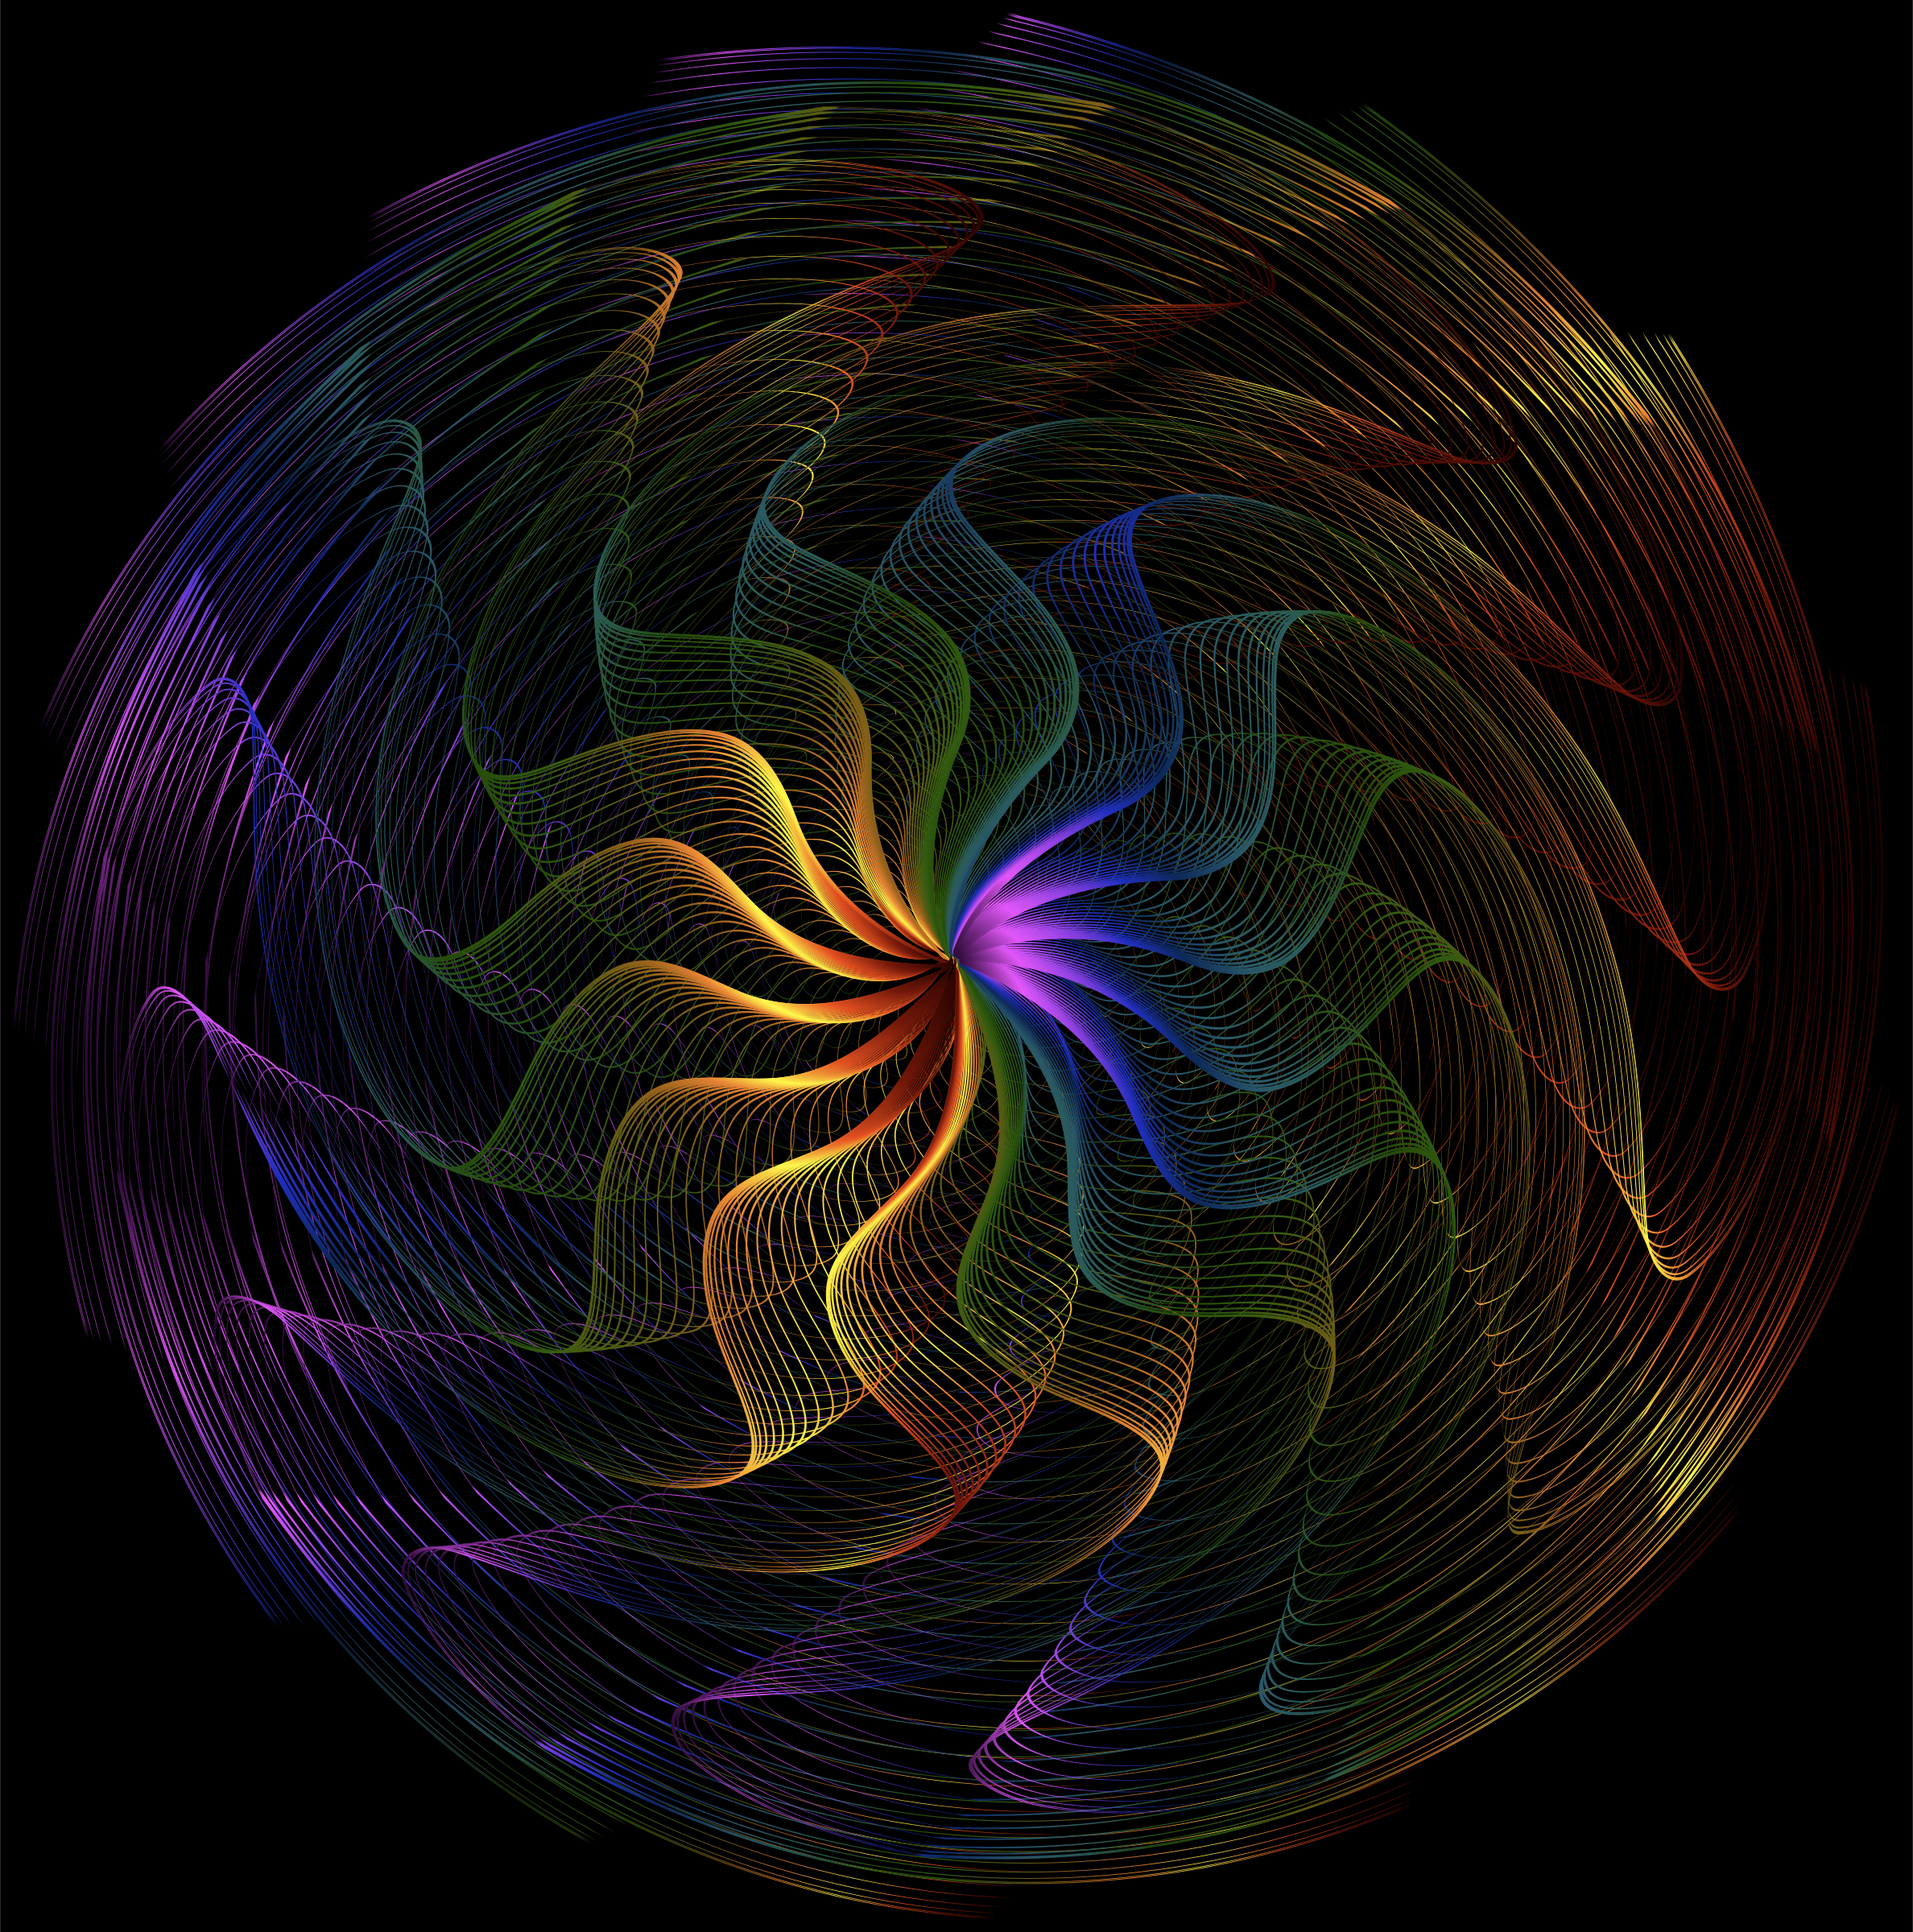 Colorful Wavy Vortex Line Art by GDJ